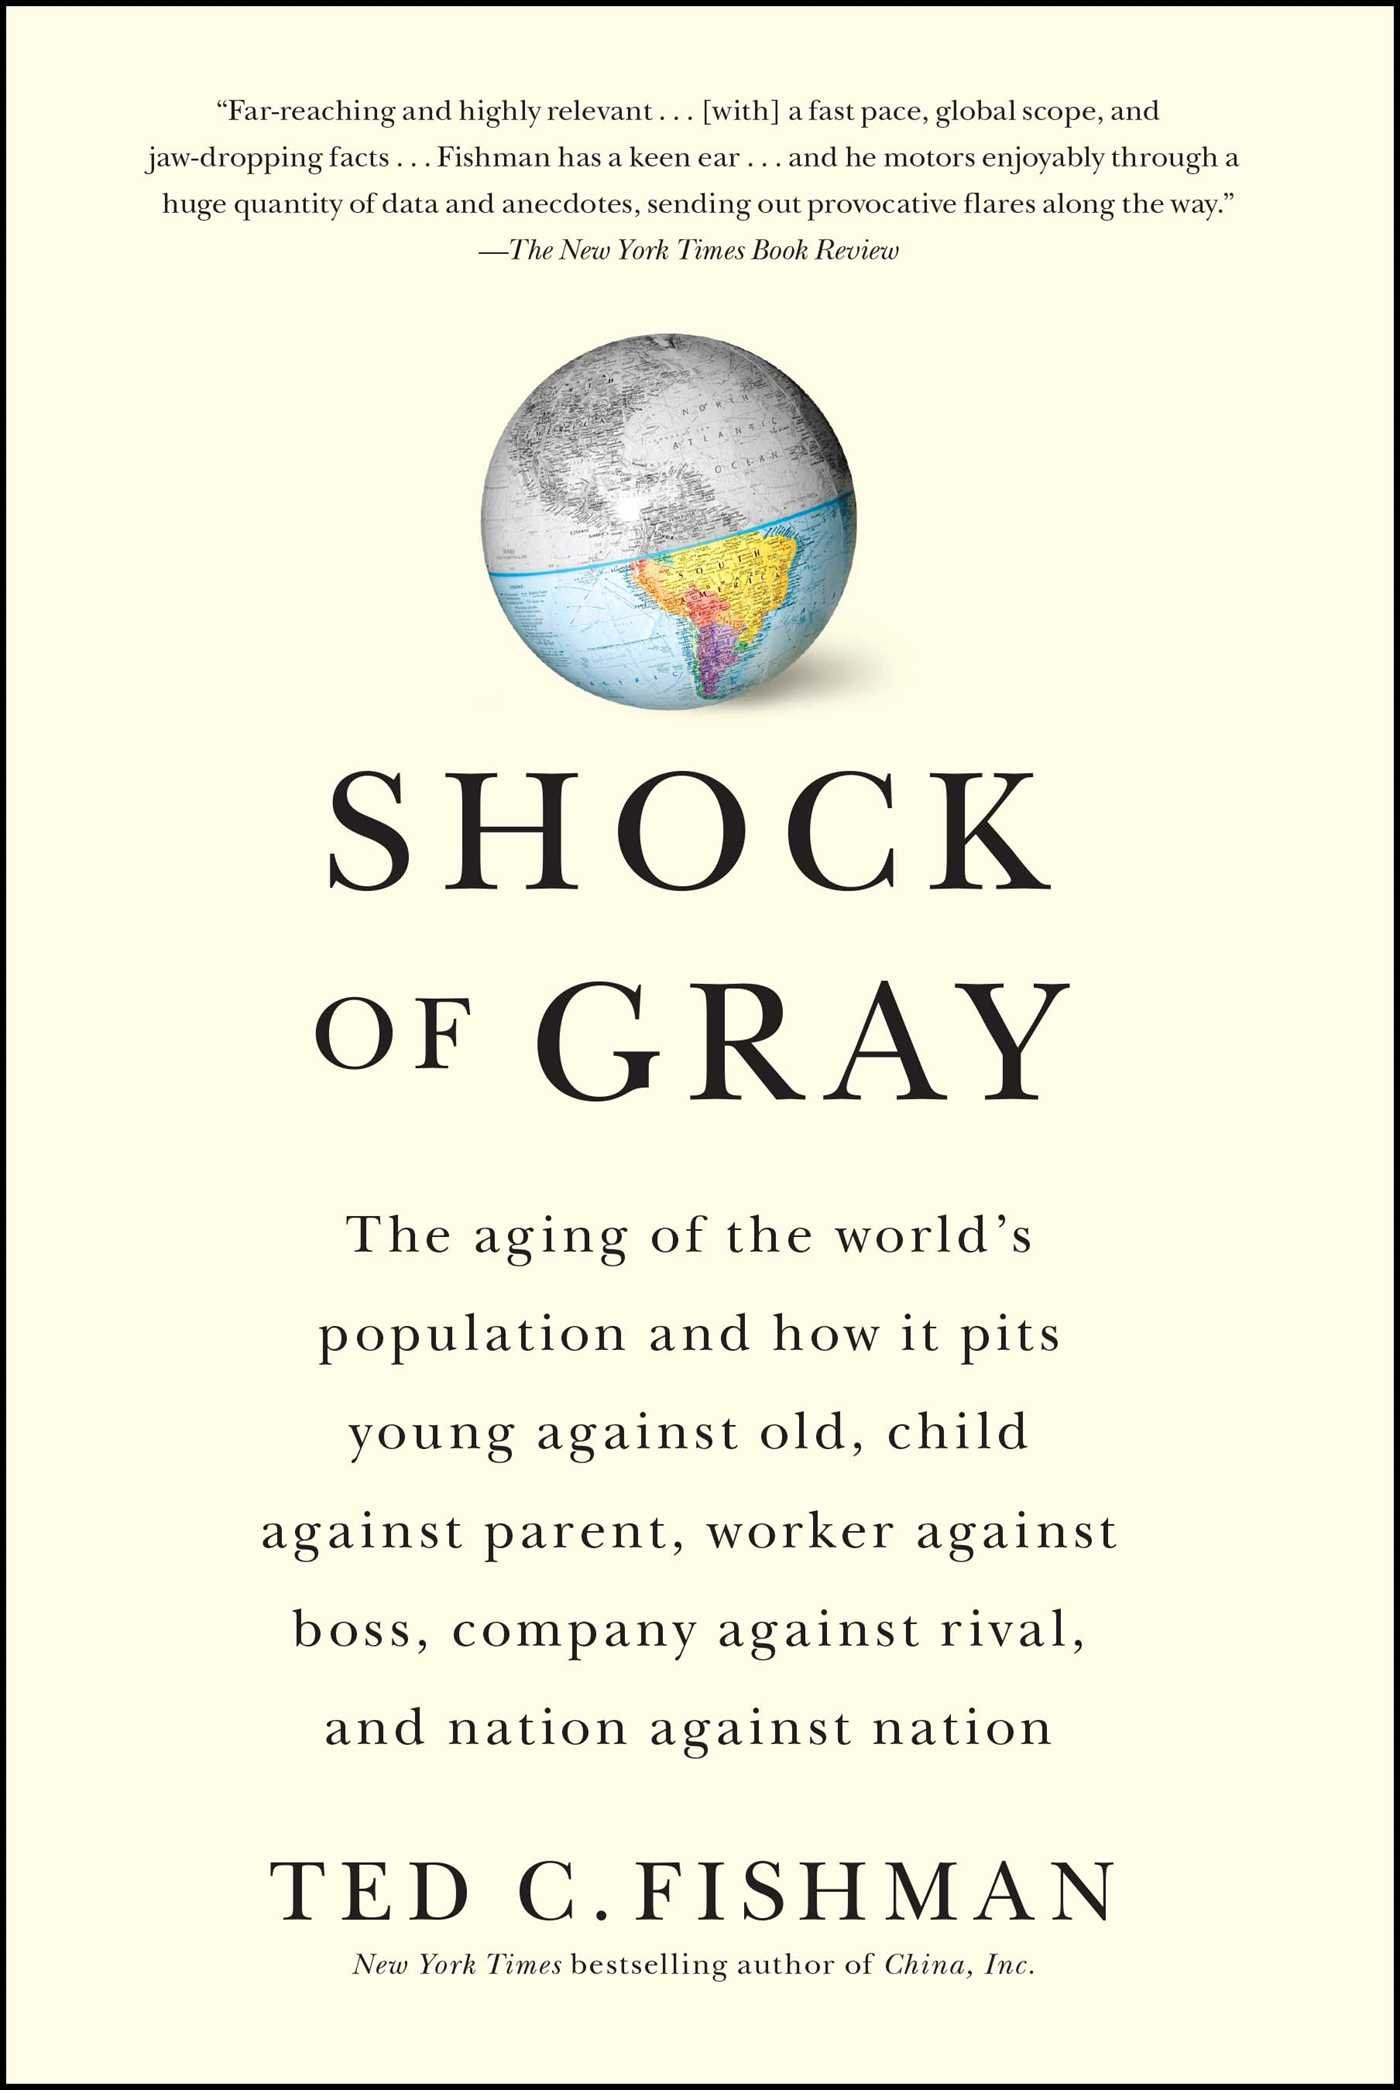 Shock of gray the aging of the worlds population and how it pits shock of gray the aging of the worlds population and how it pits young against old child against parent worker against boss company against rival fandeluxe Choice Image